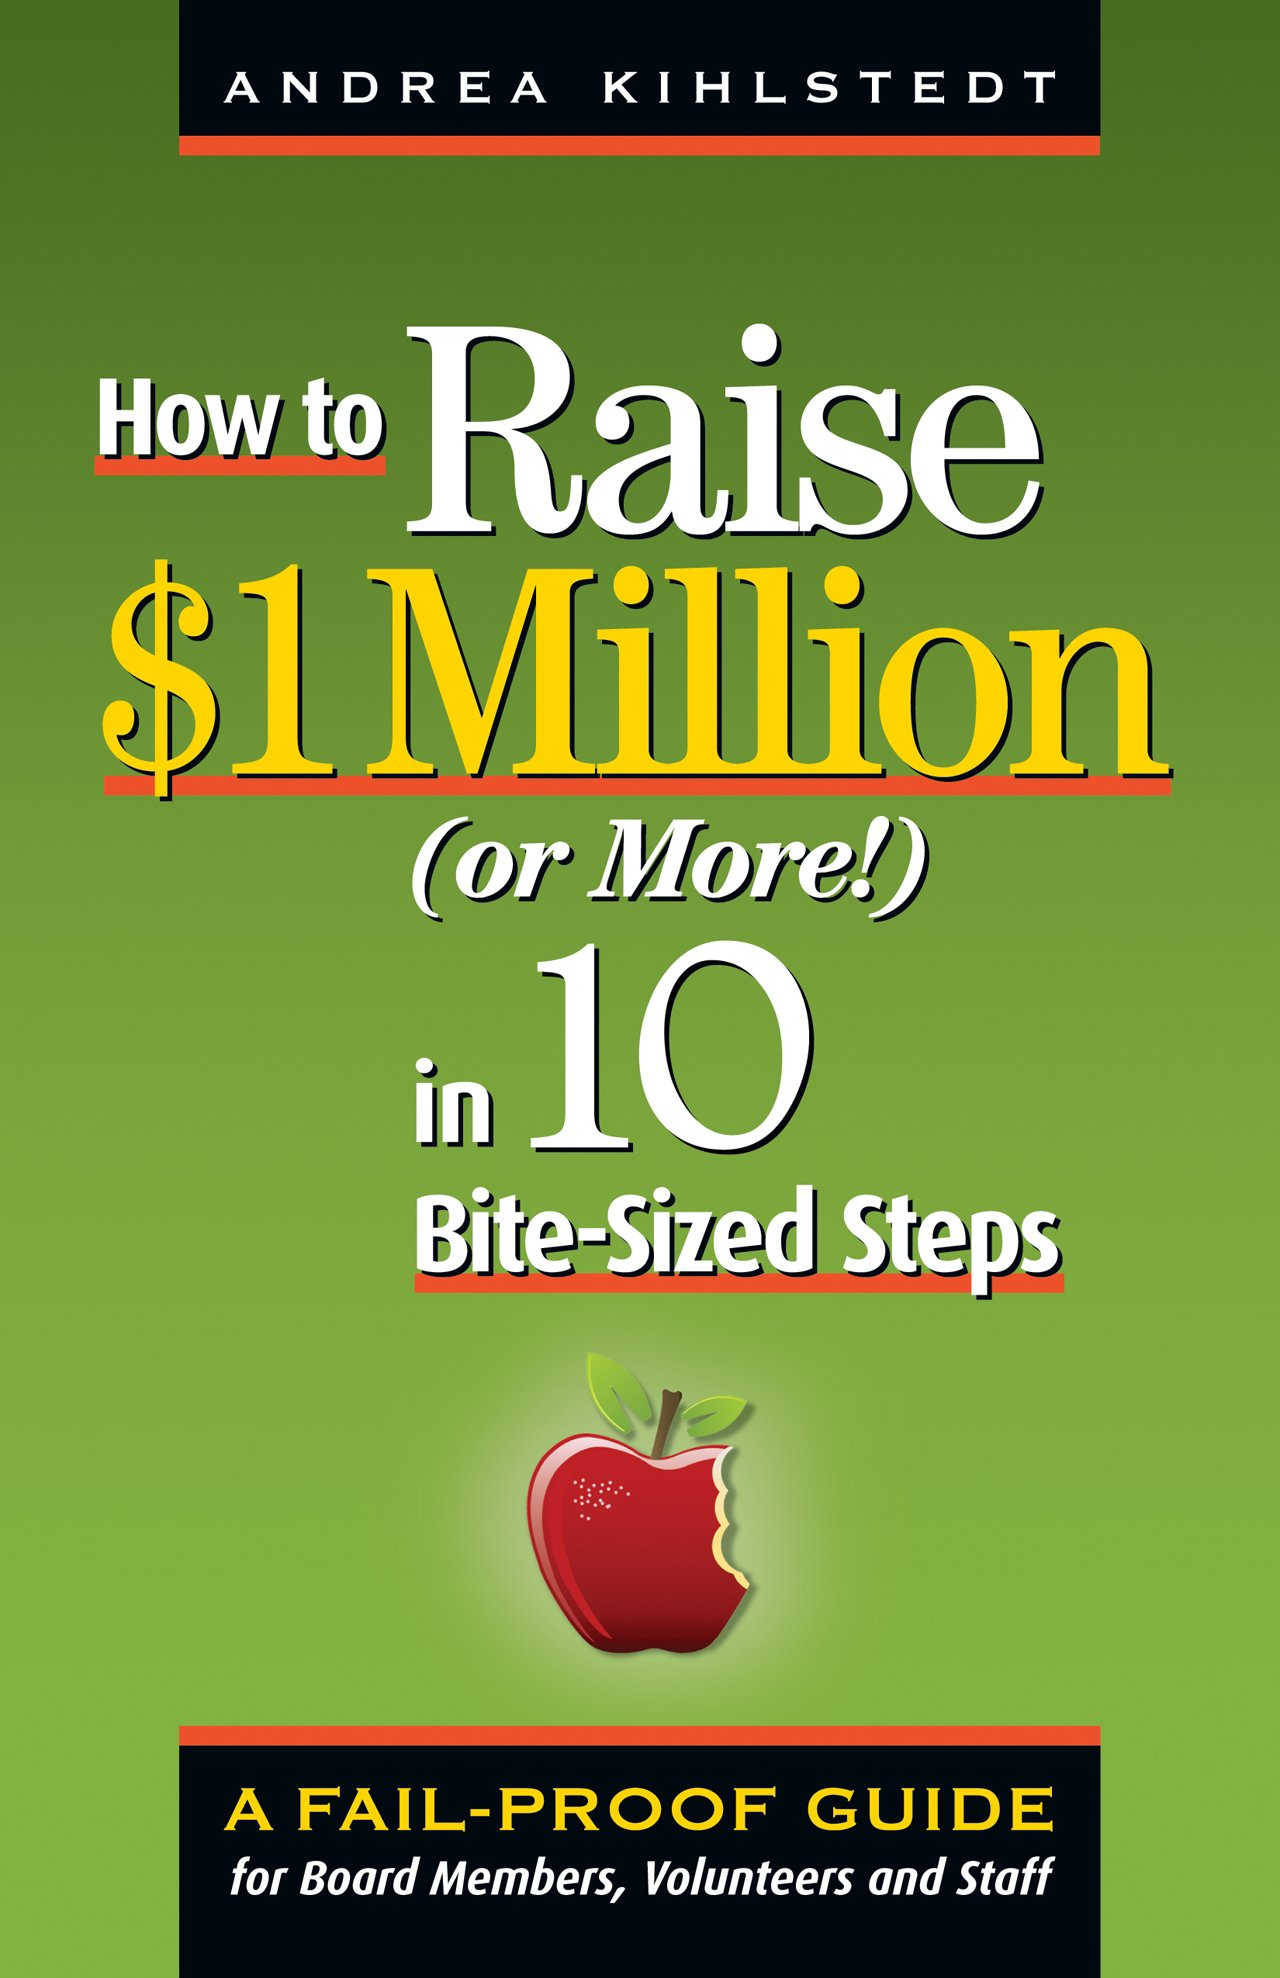 How To Raise $1 Million (or More!) In 10 Bitesized Steps: A